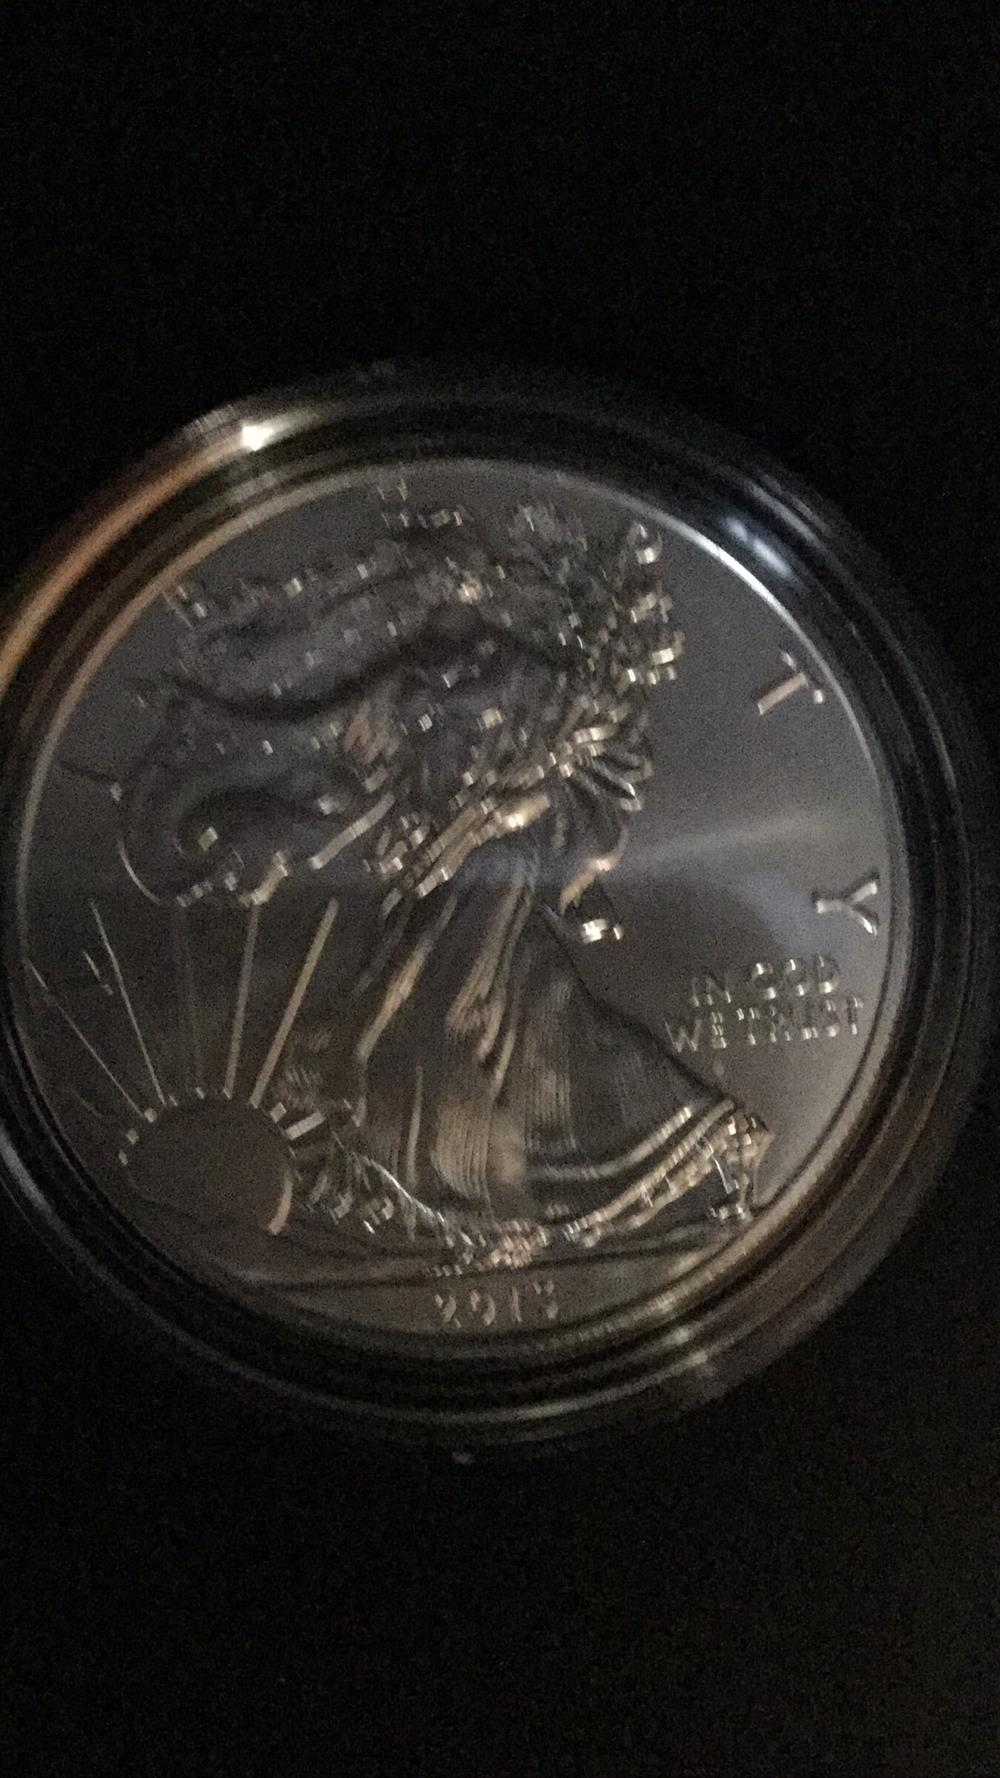 Lot 74: American eagle uncirculated coin